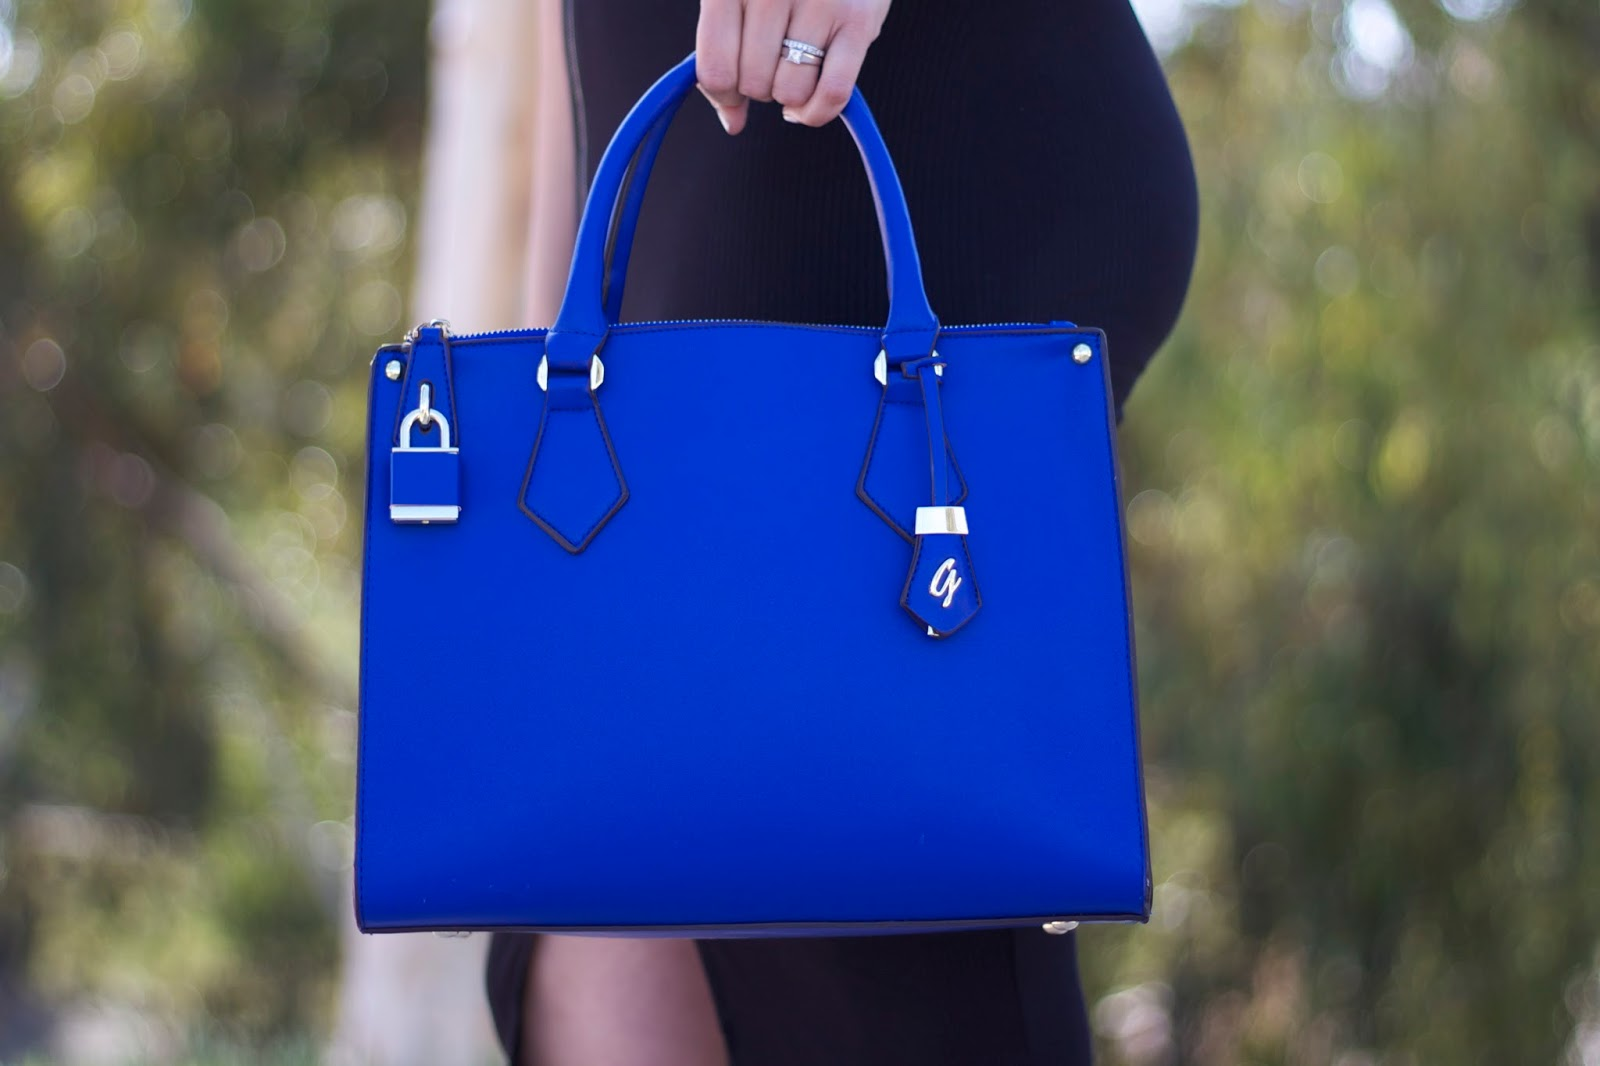 Galian Handbag Blogger Blue Structured Bag